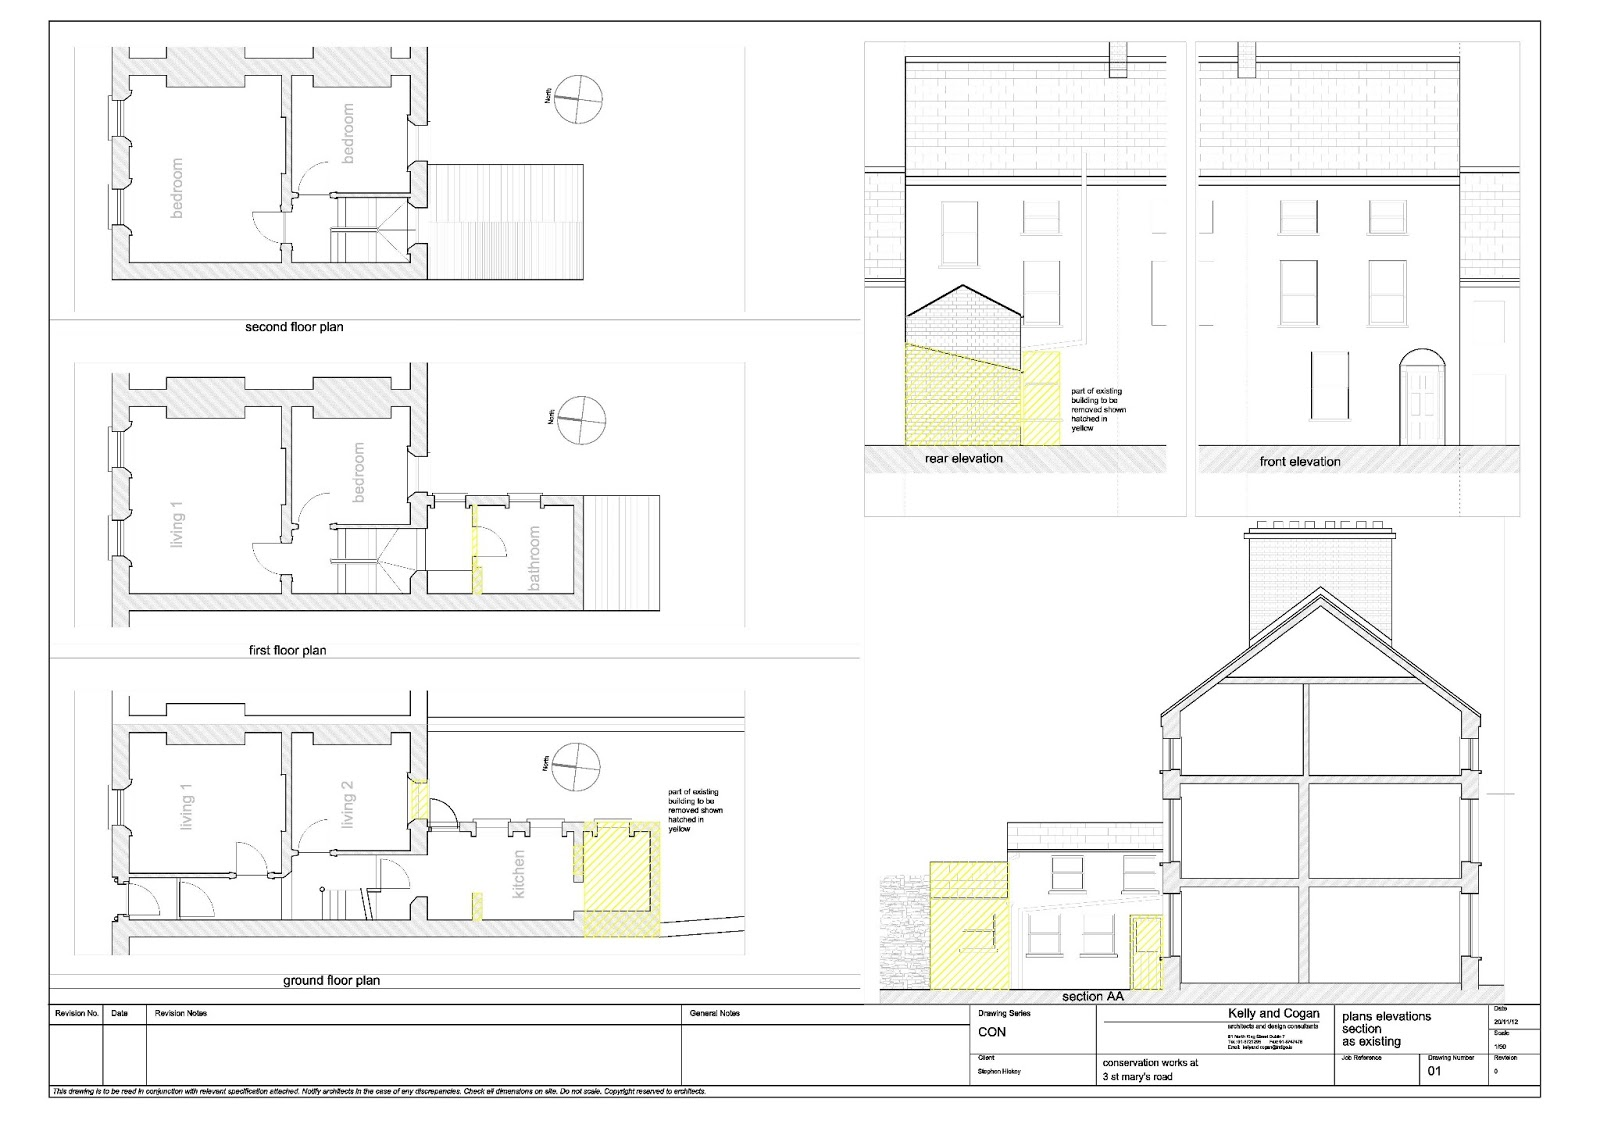 Georgian House Renovation - Dundalk, Louth, Ireland: Existing Plan ...